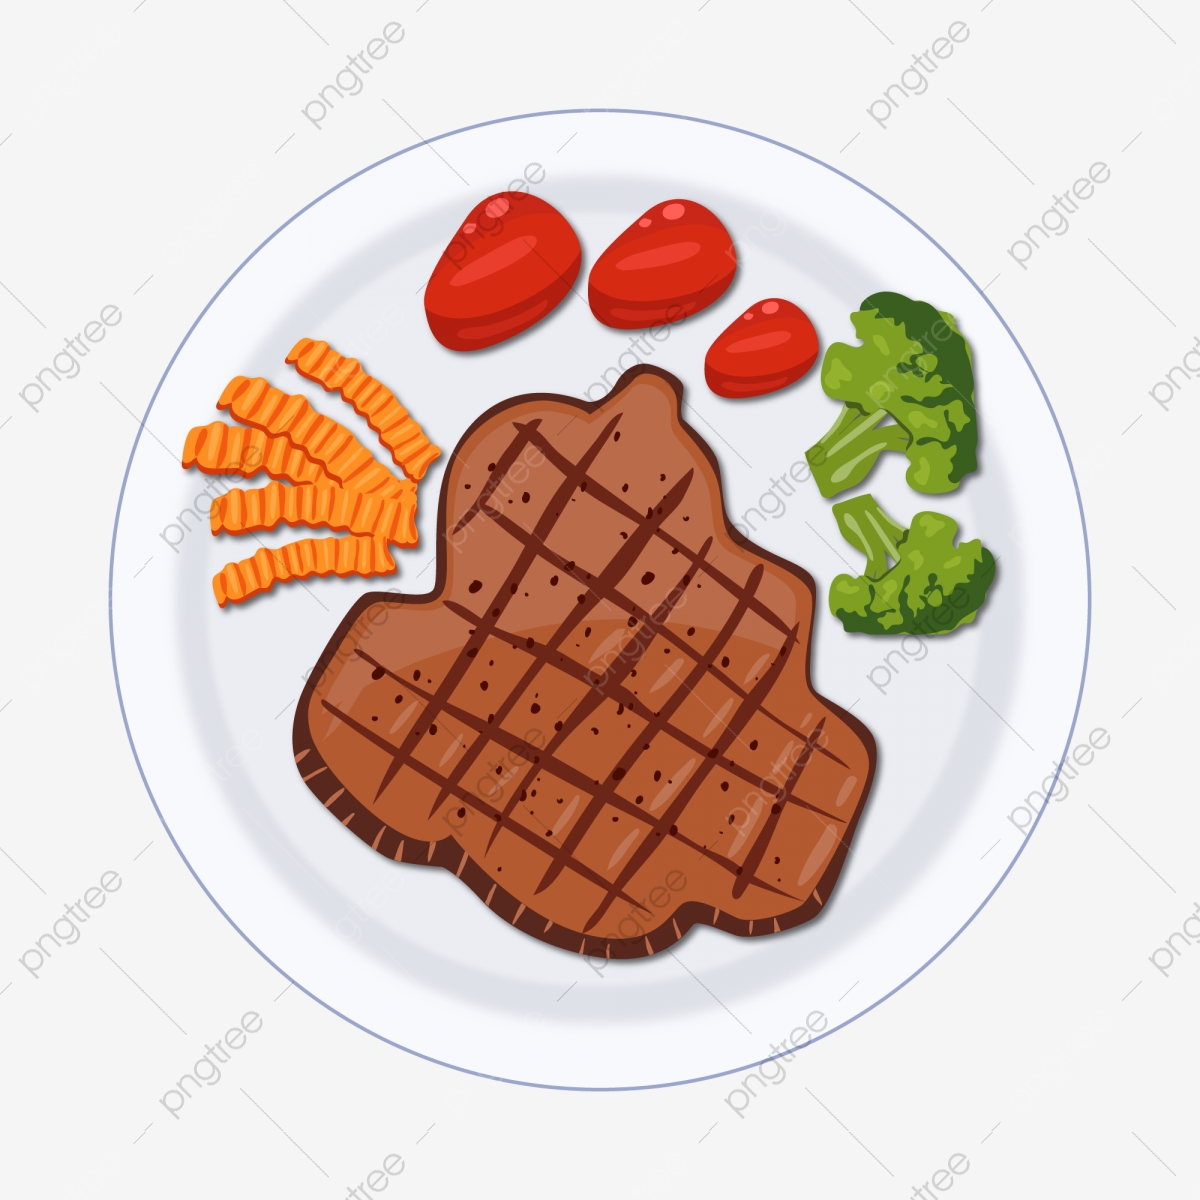 cartoon steak vector material ai element free vector material png and vector with transparent background for free download https pngtree com freepng cartoon steak vector material 4368990 html